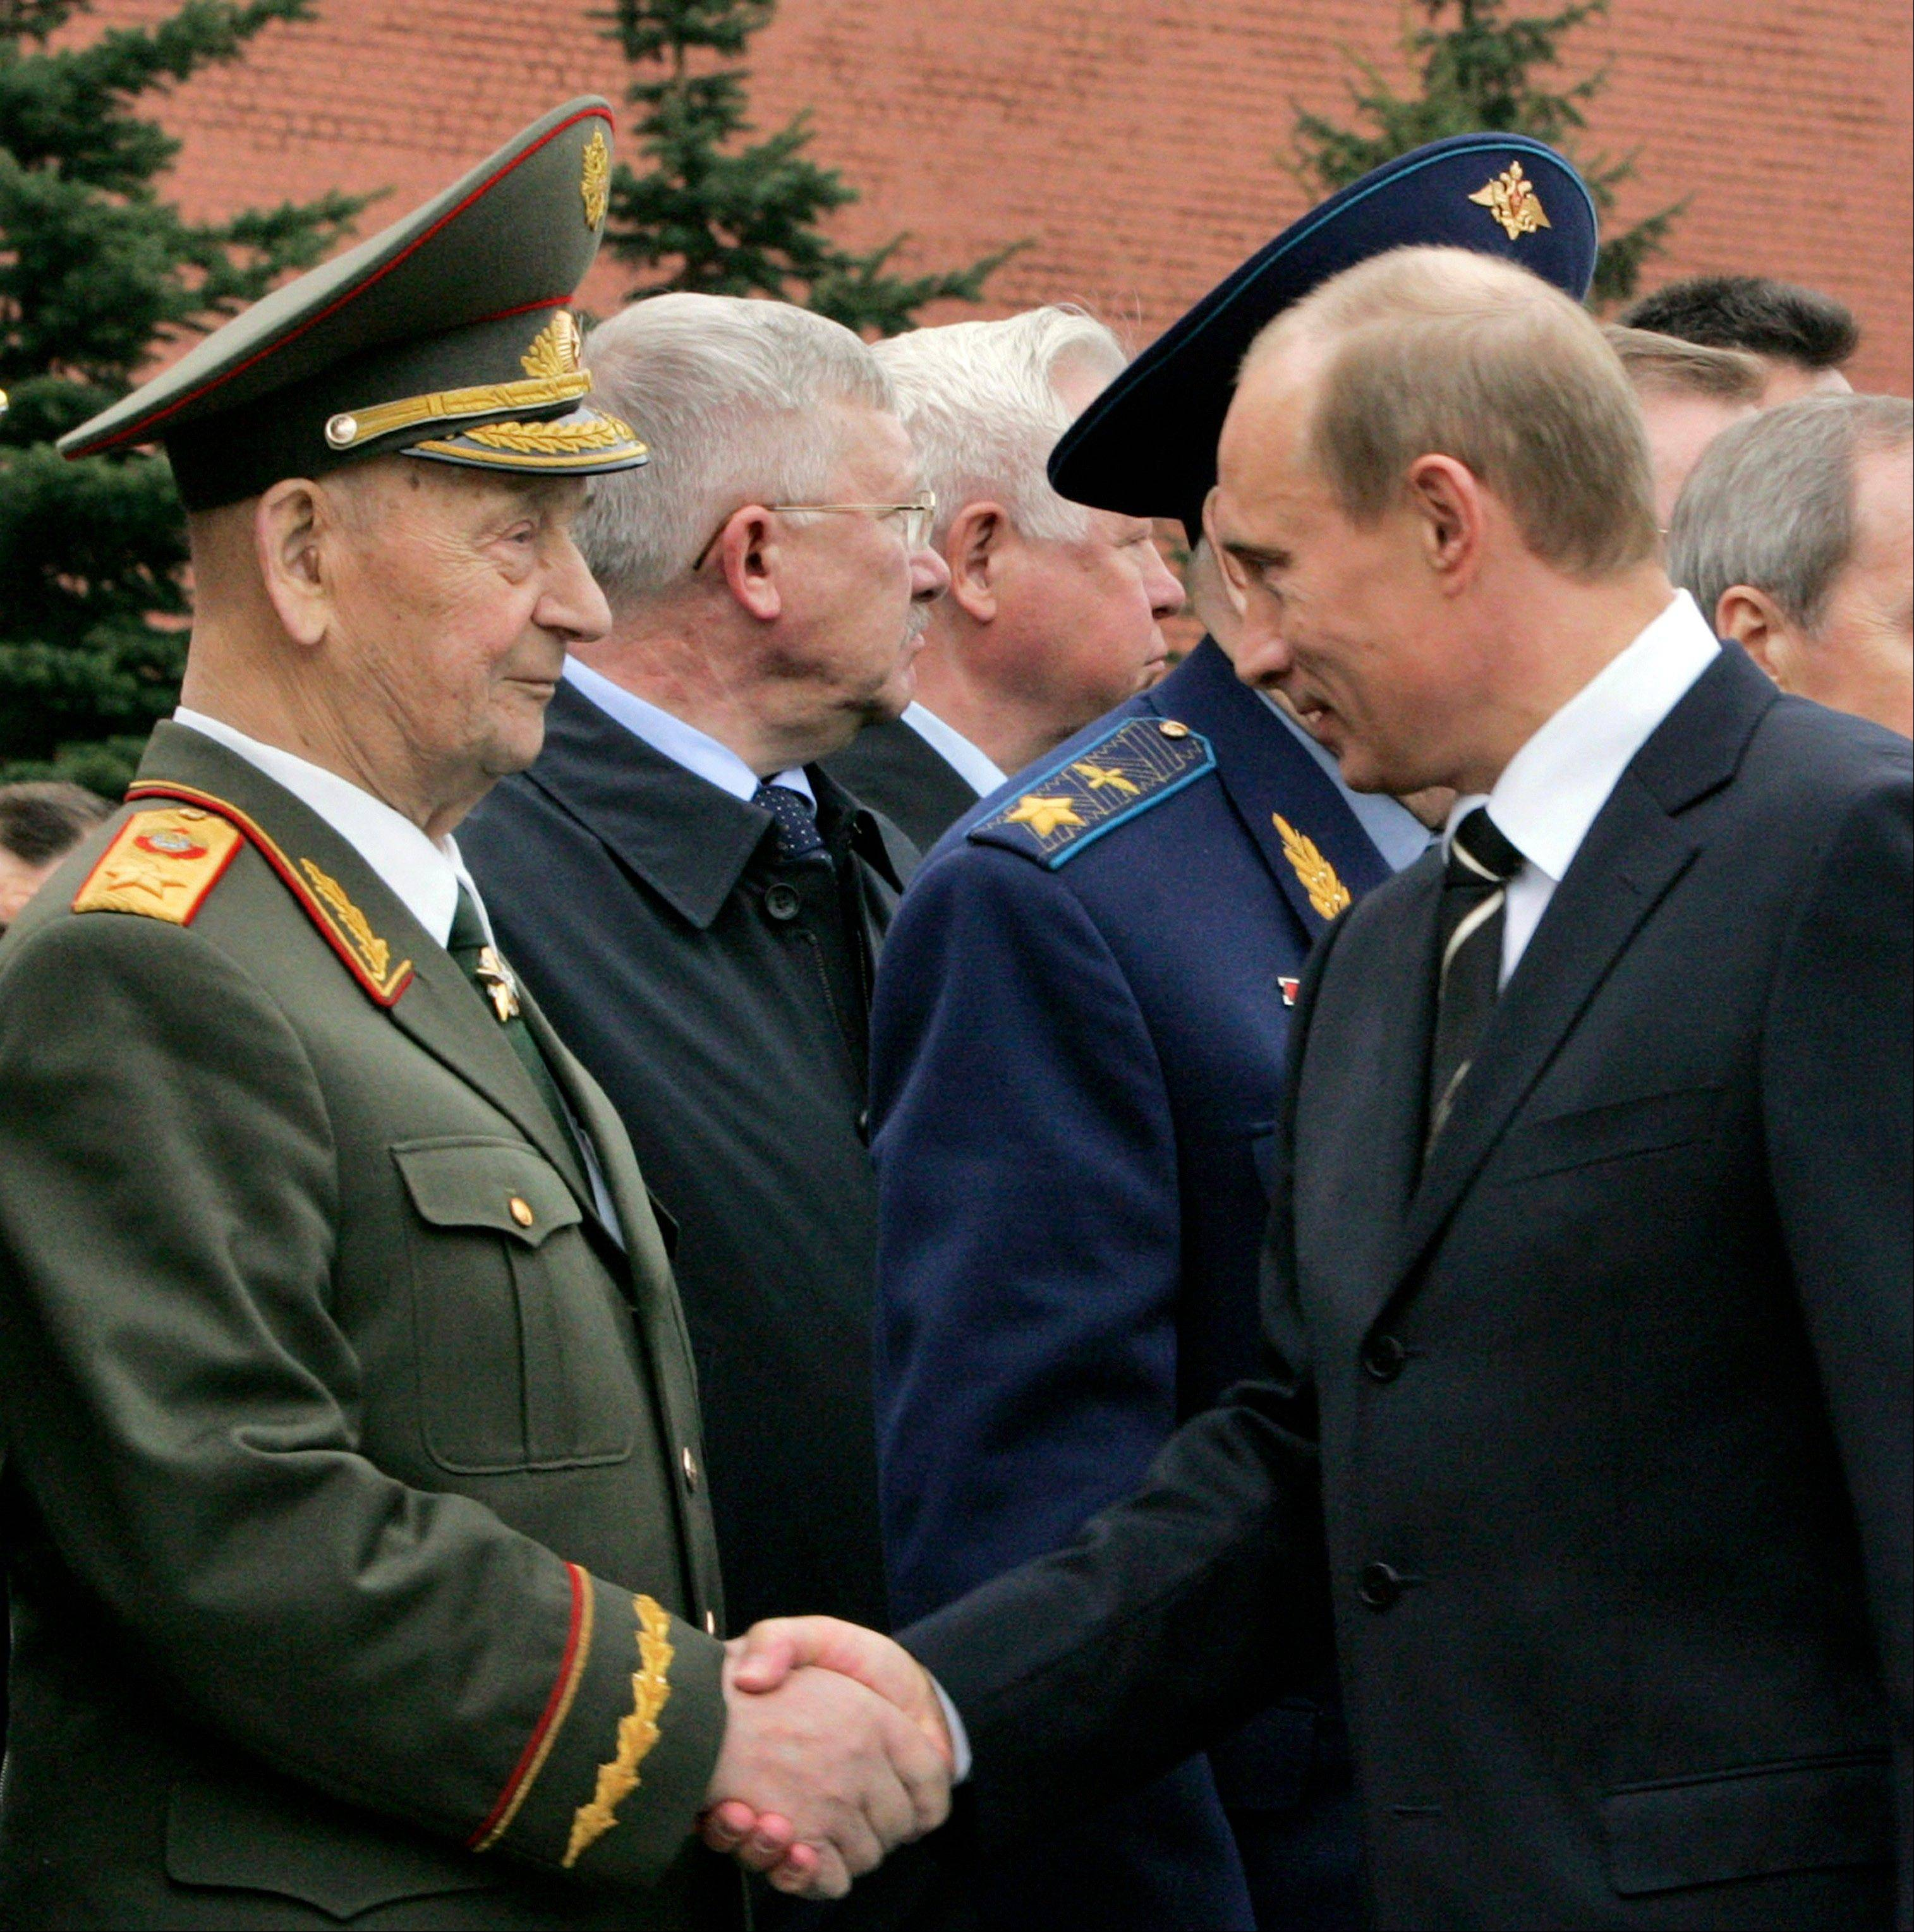 In this 2007 file photo, former Soviet Defense Minister, Marshal Sergei Sokolov, left, shakes hands with Russian President Vladimir Putin, right. Sergei Sokolov, the Soviet defense minister fired by the Politburo after a German teenager landed his plane on Moscow's Red Square in the 1980s, has died. He was 101.